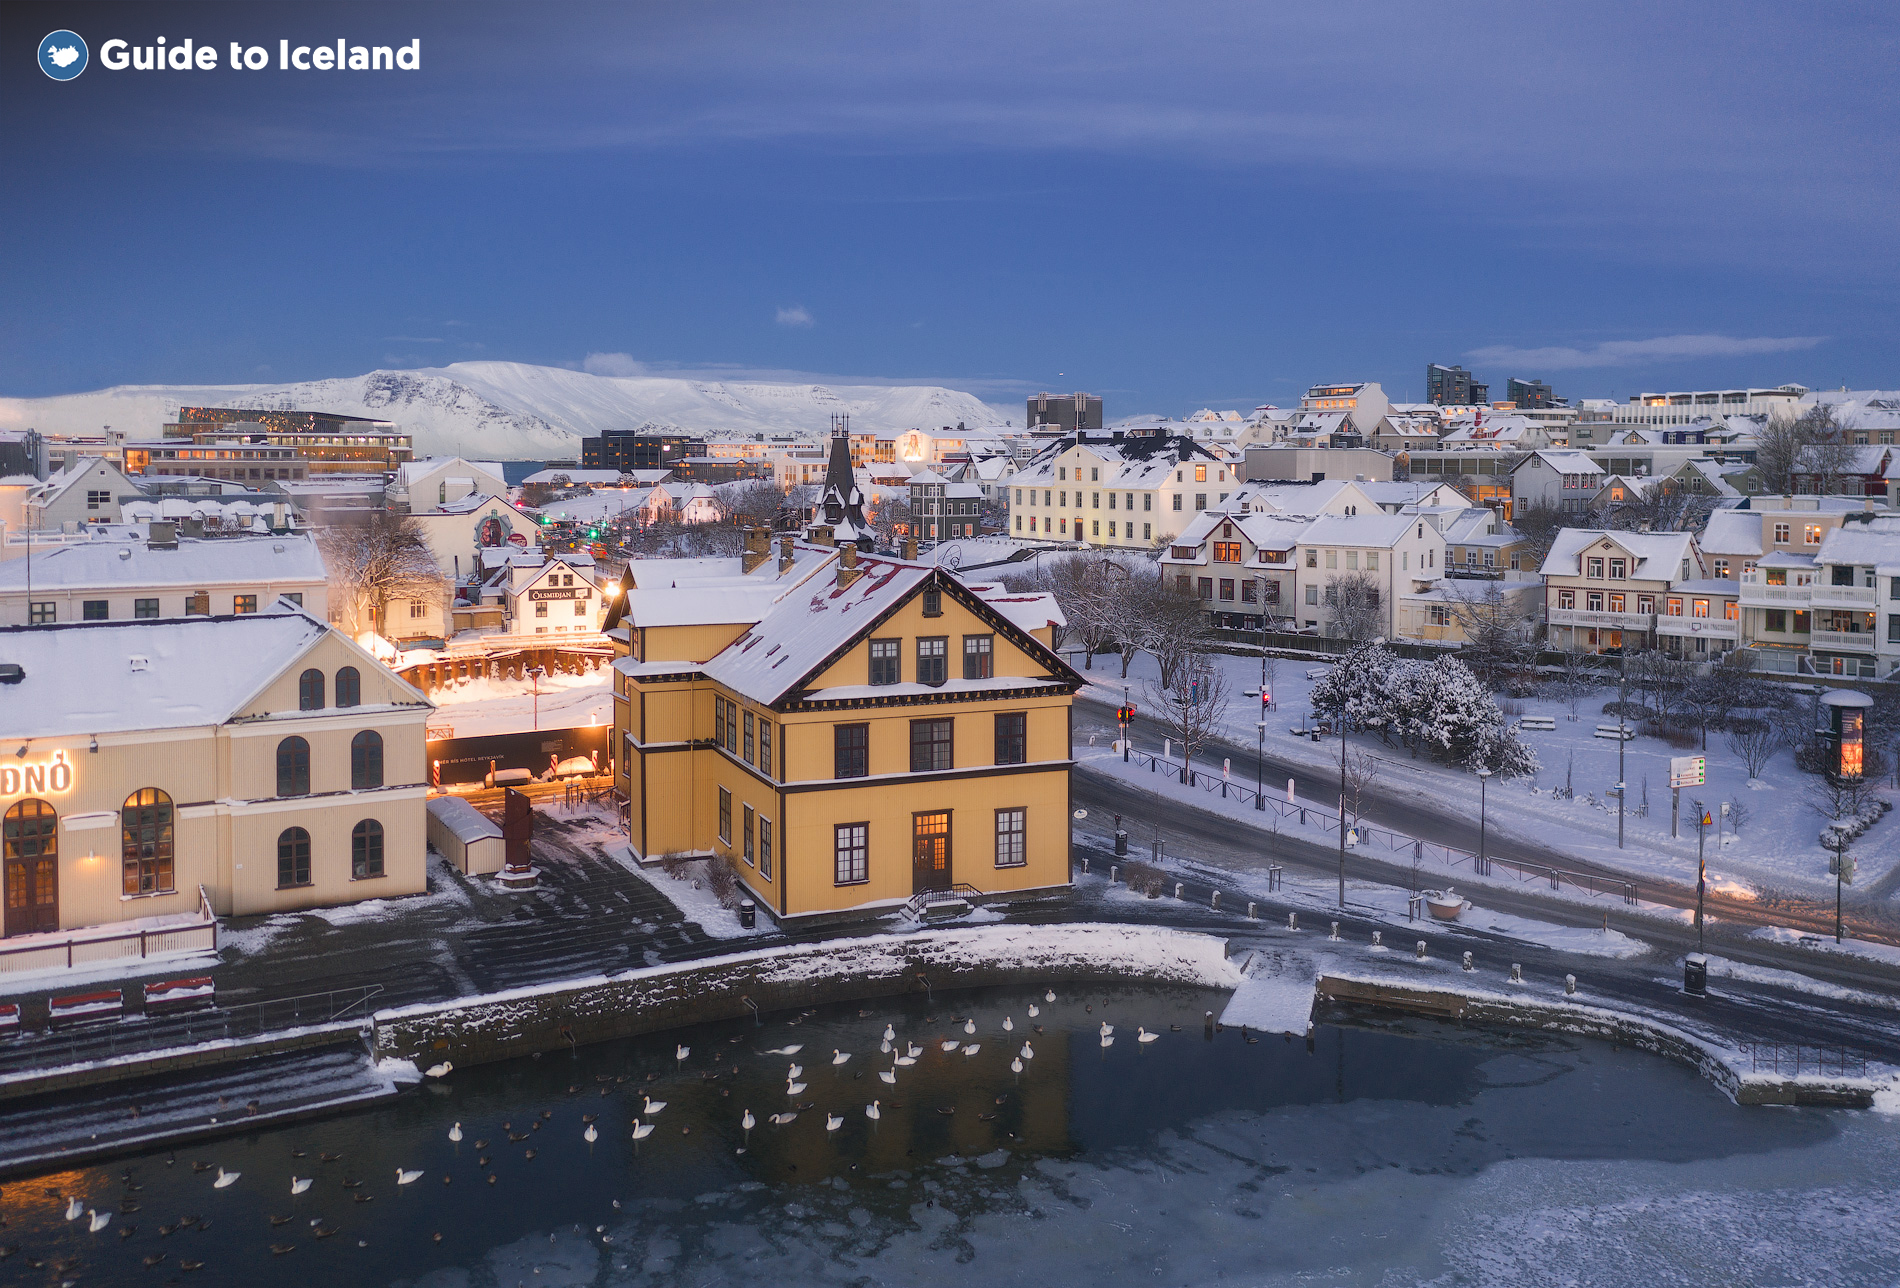 The city of Reykjavik blanketed in snow